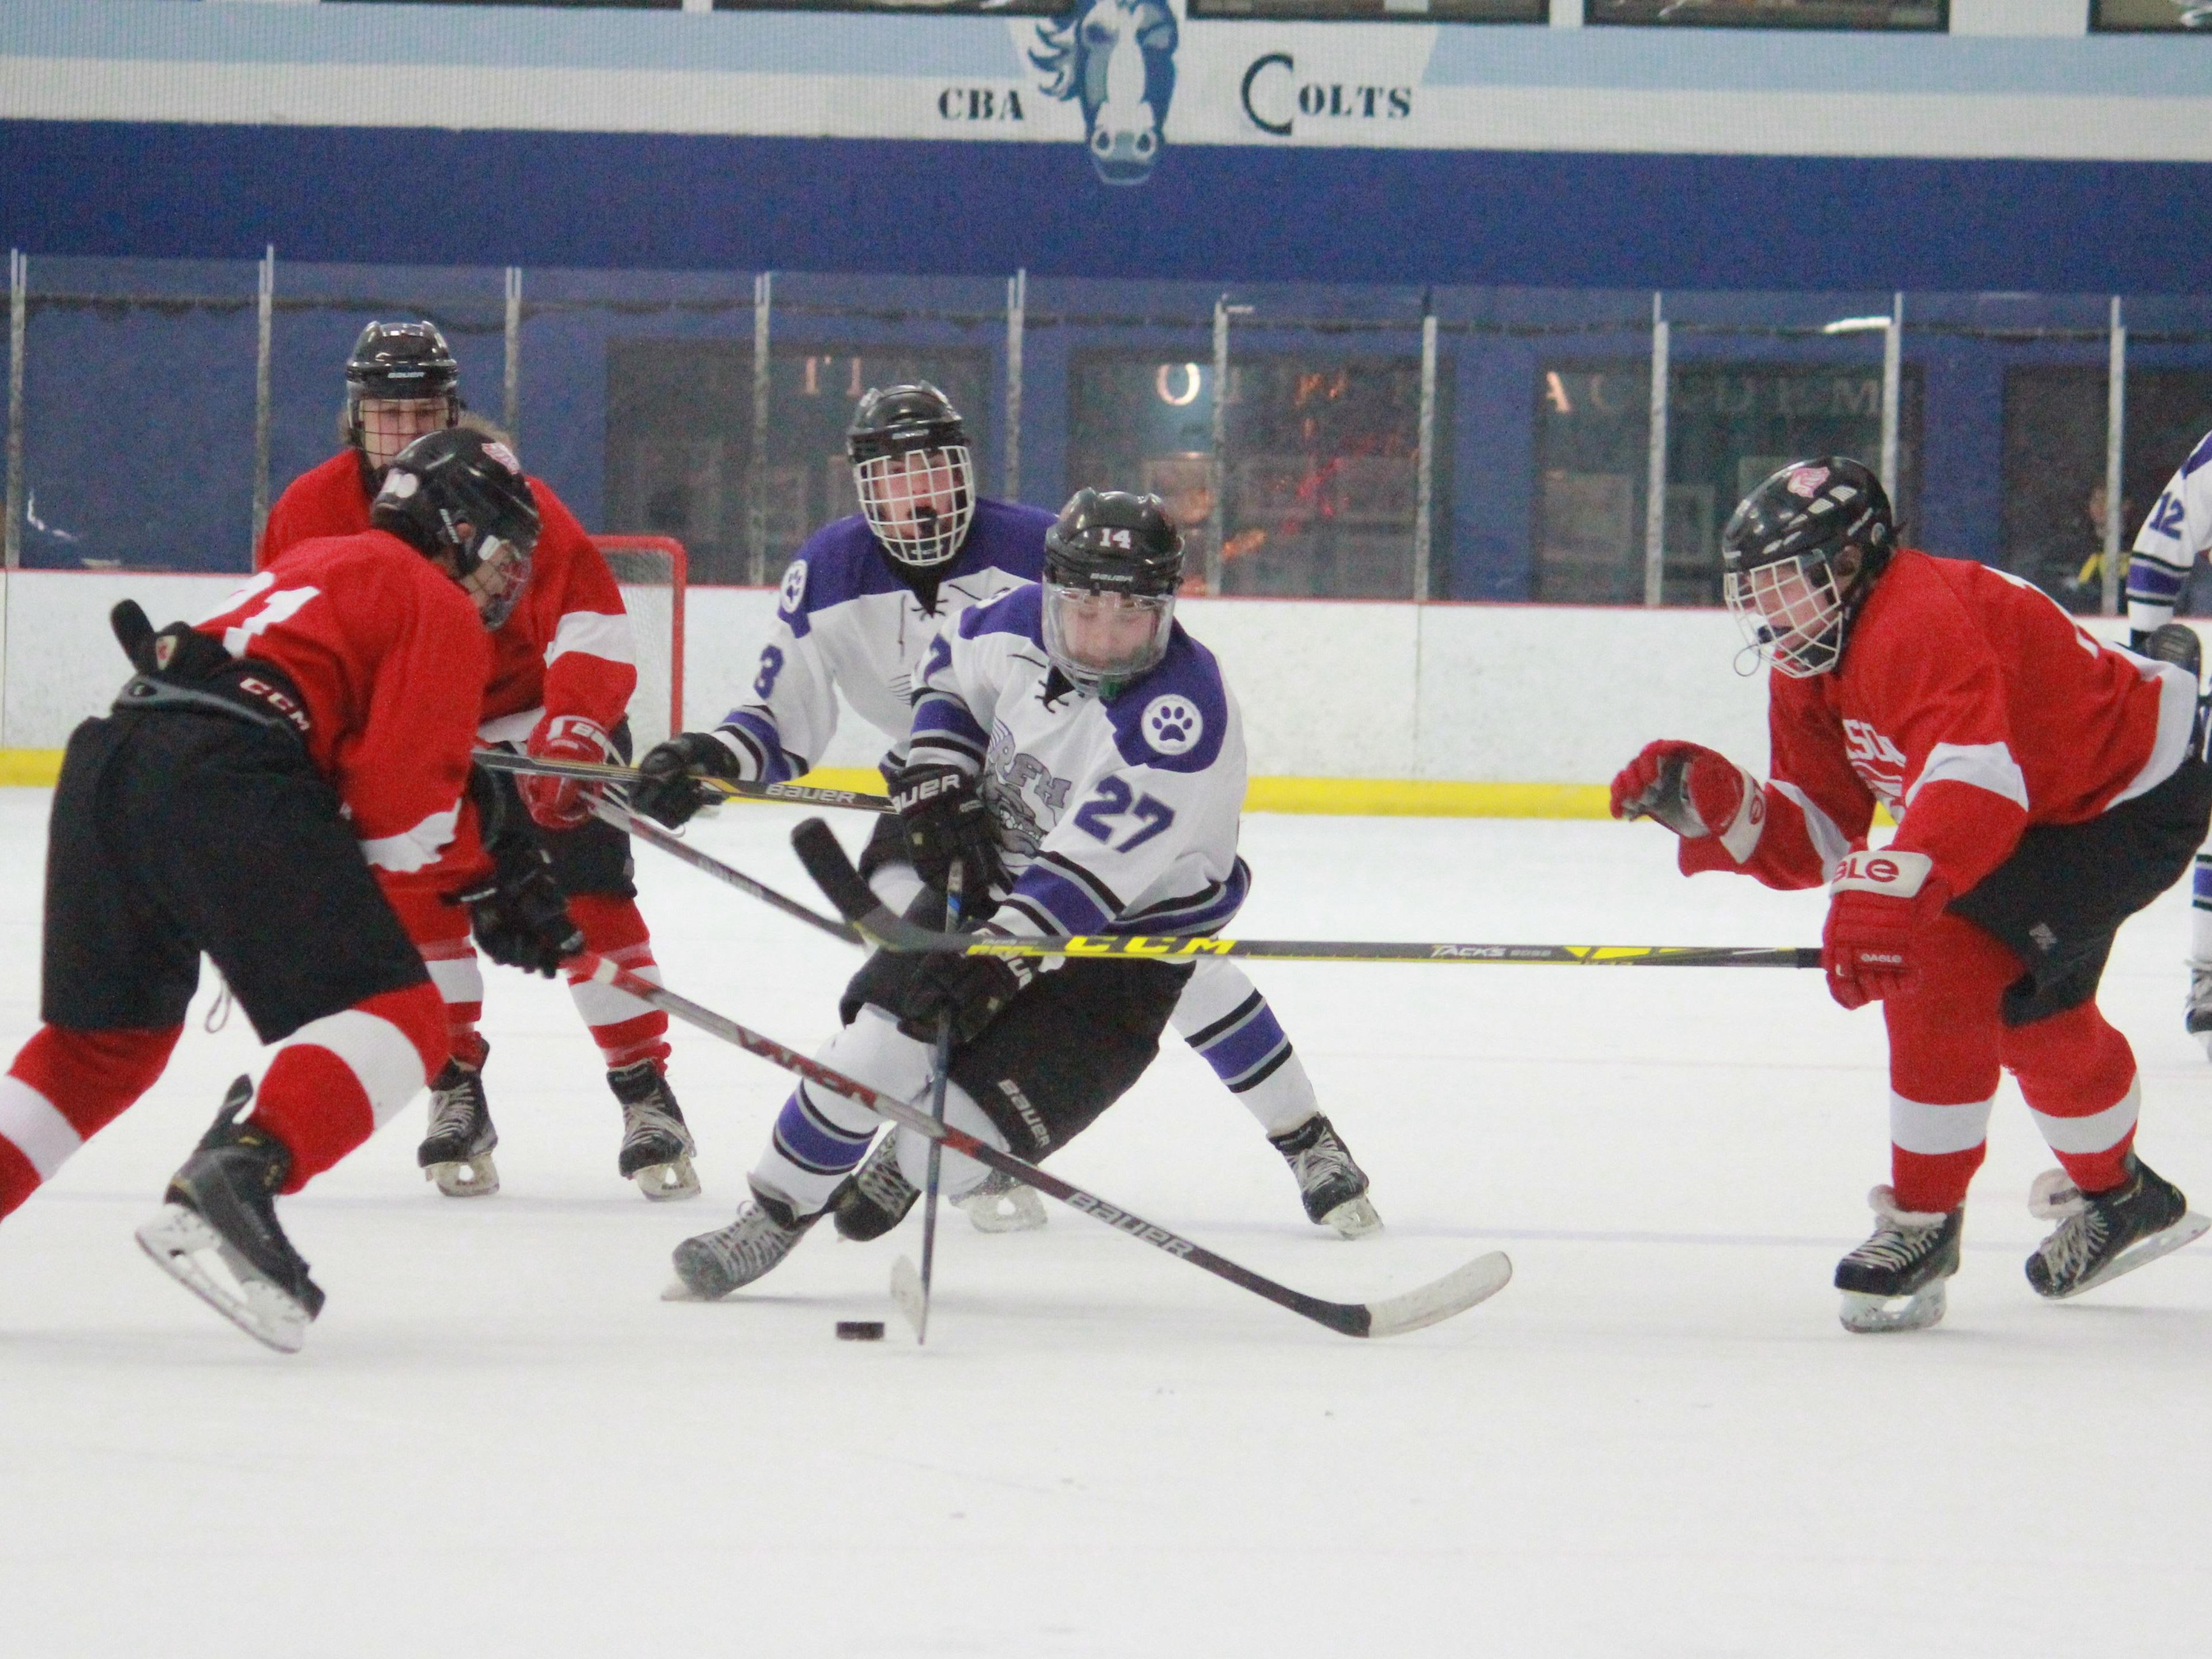 Brendan Ban (27) of Rumson leads the conference in scoring.